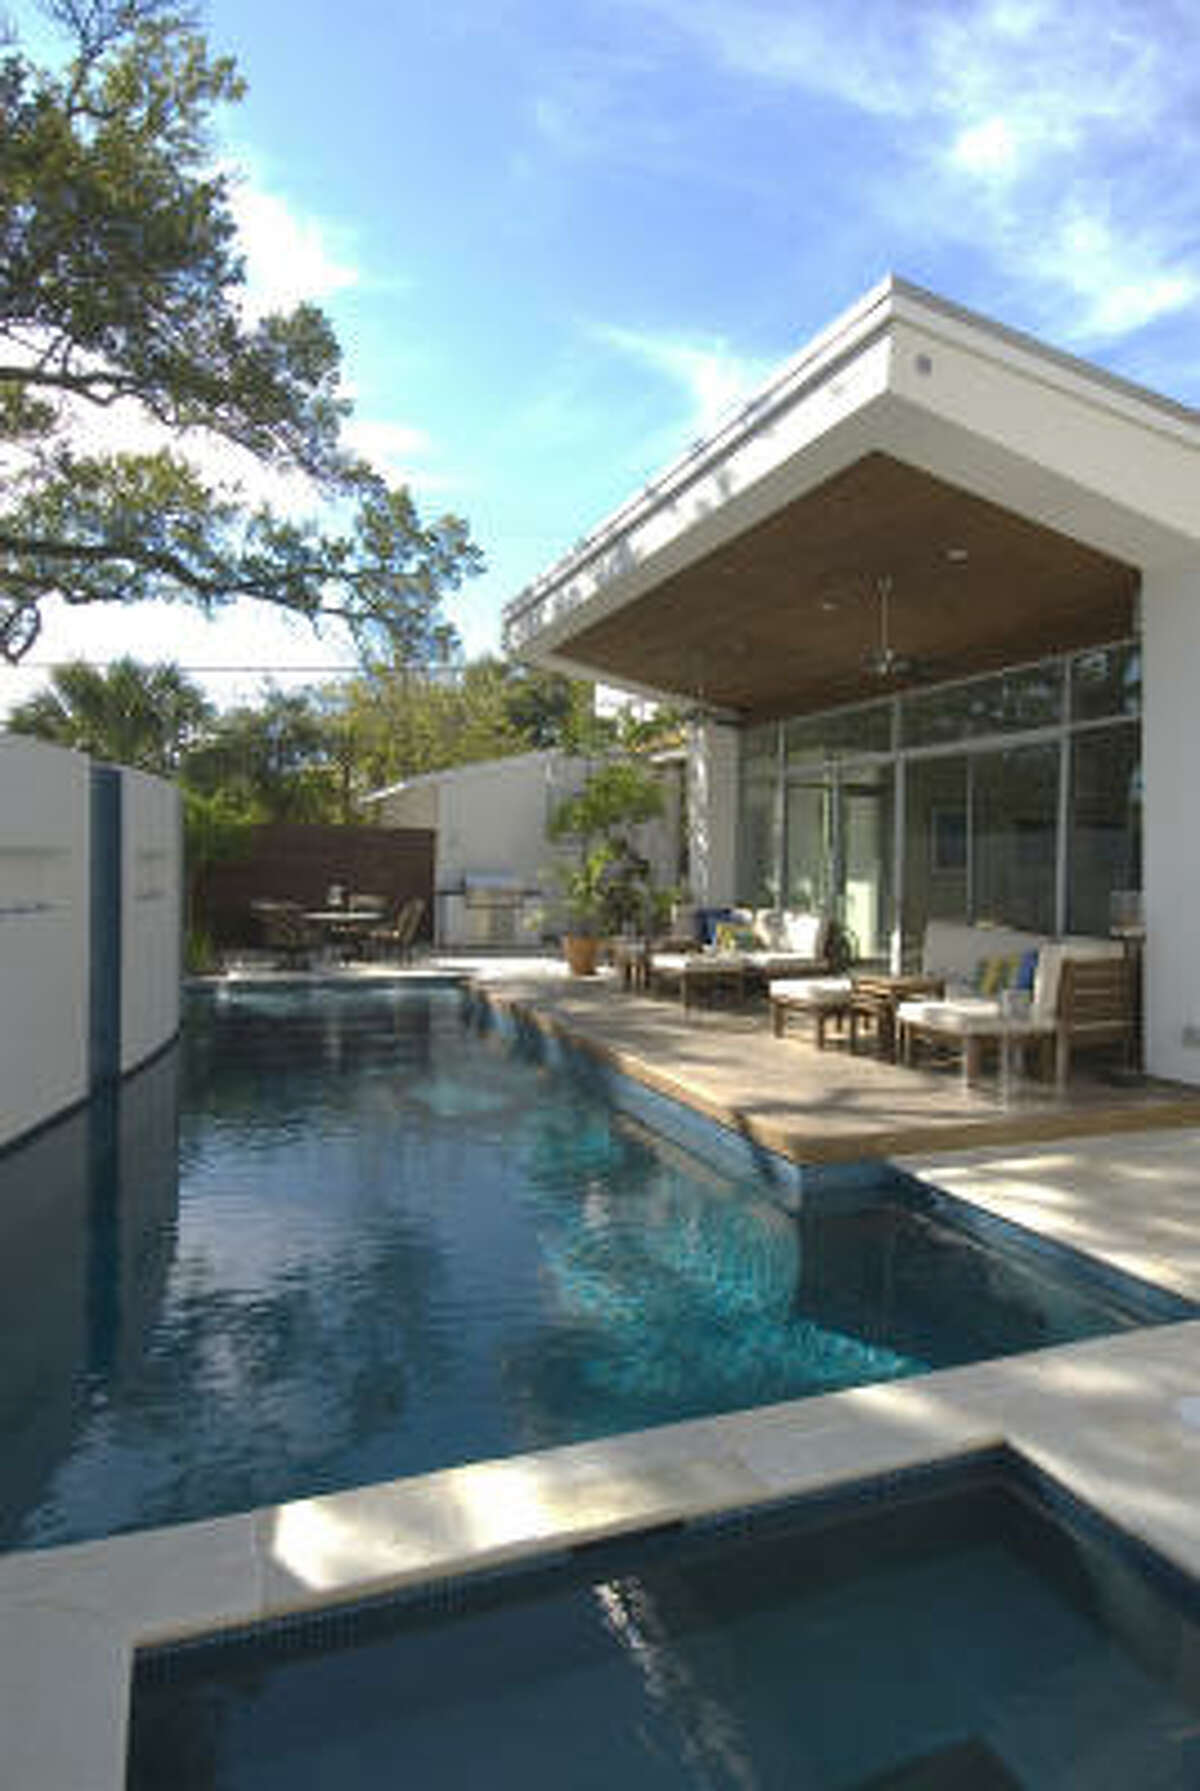 The pool and loggia serve as a nice-weather extension of the living room.